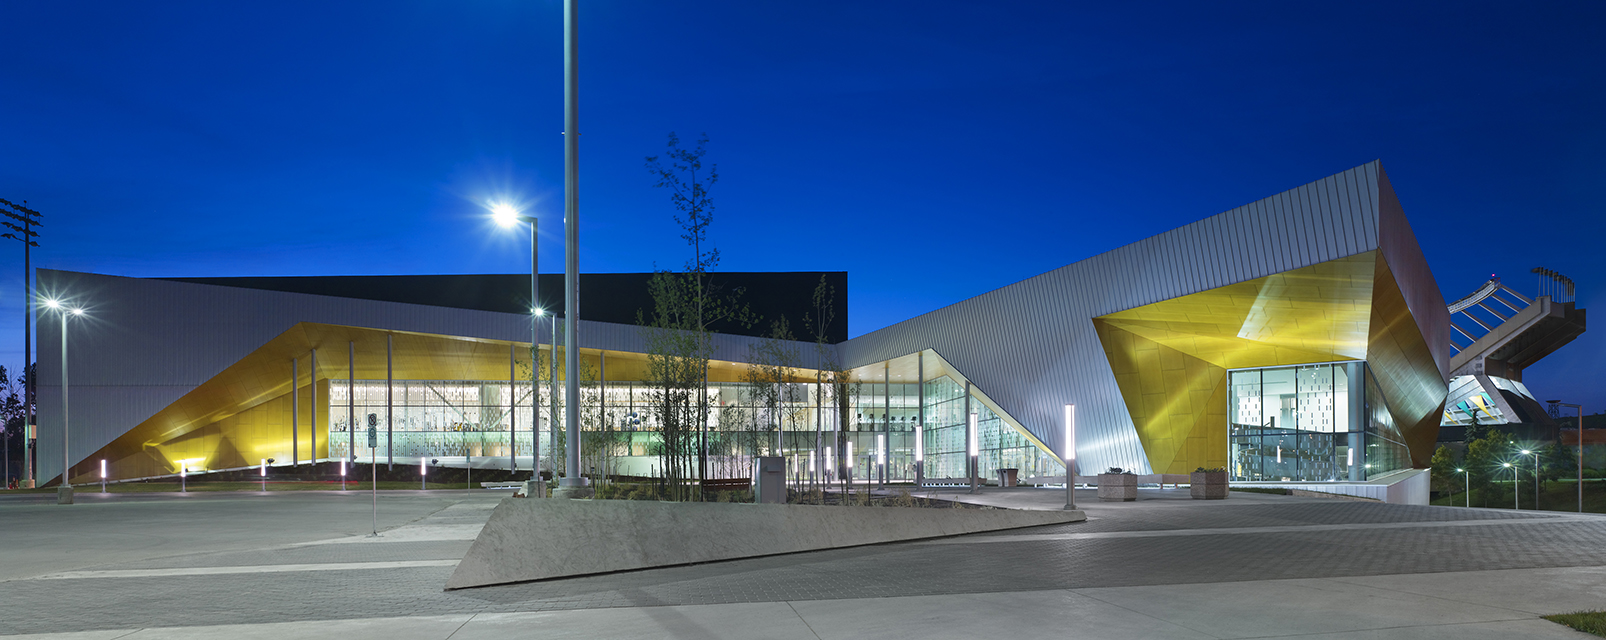 2013 Facilities Of Merit Commonwealth Community Recreation Centre Athletic Business